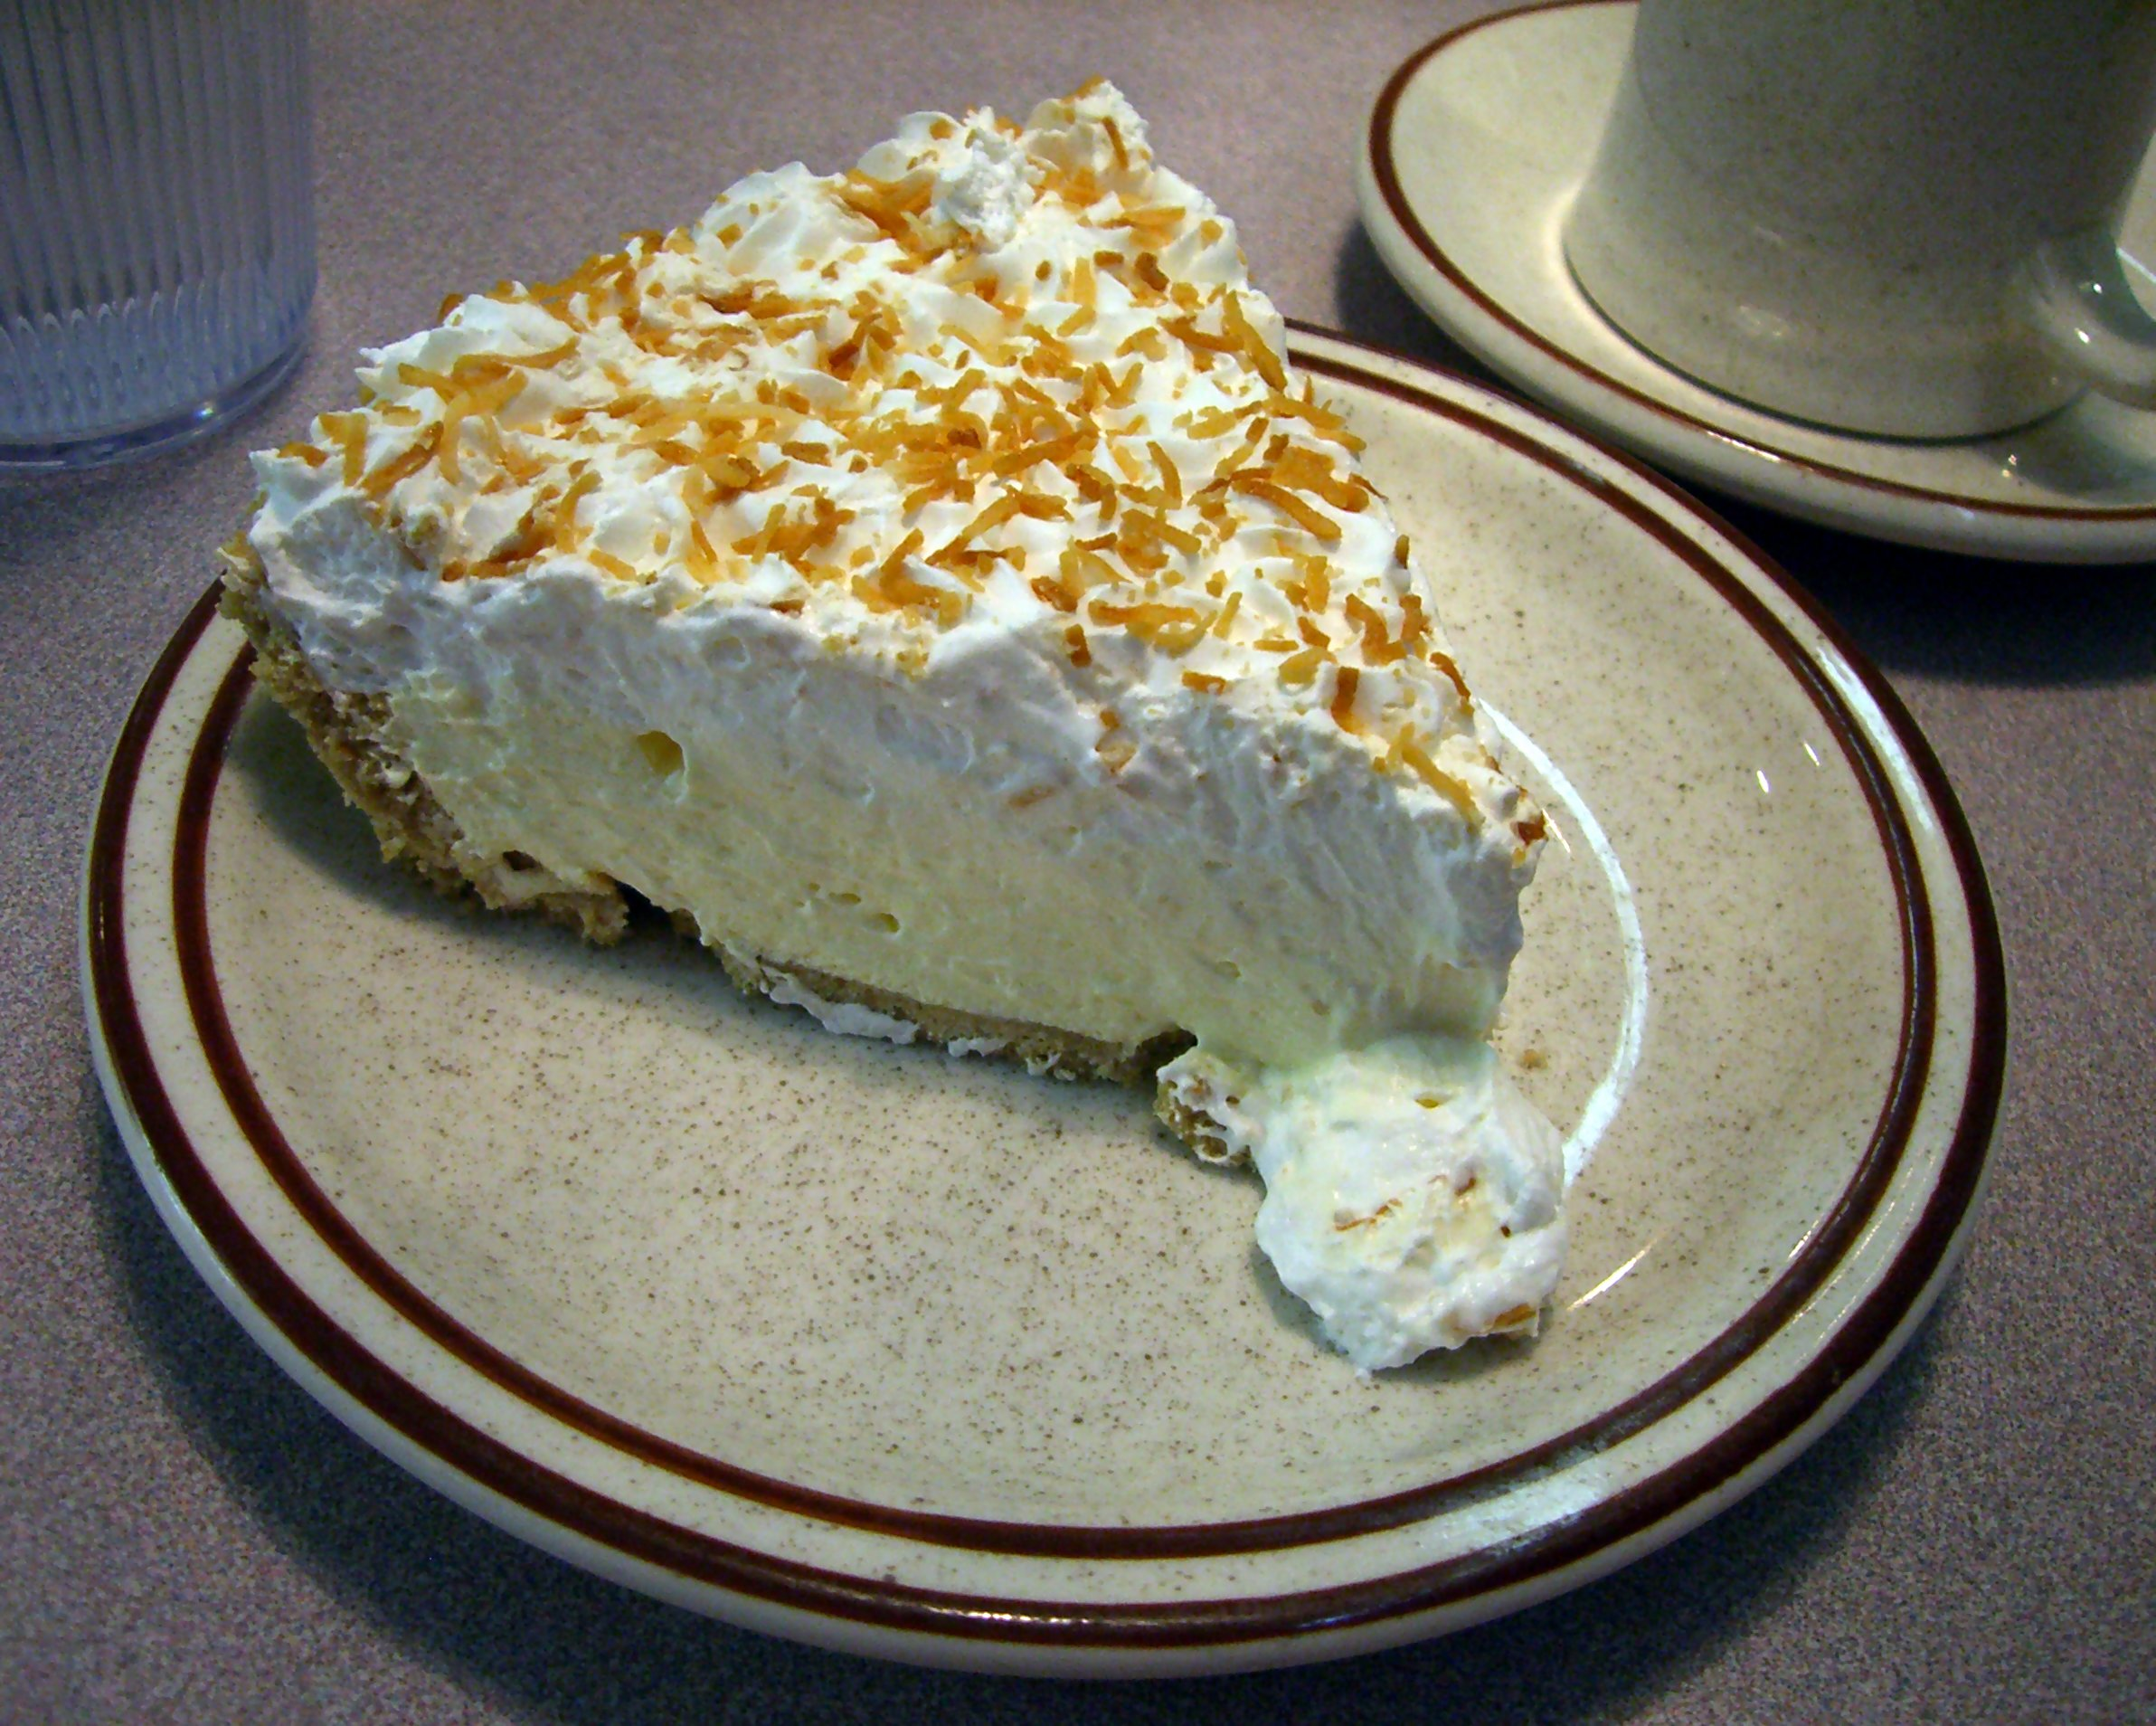 File:Coconut cream pie.jpg - Wikipedia